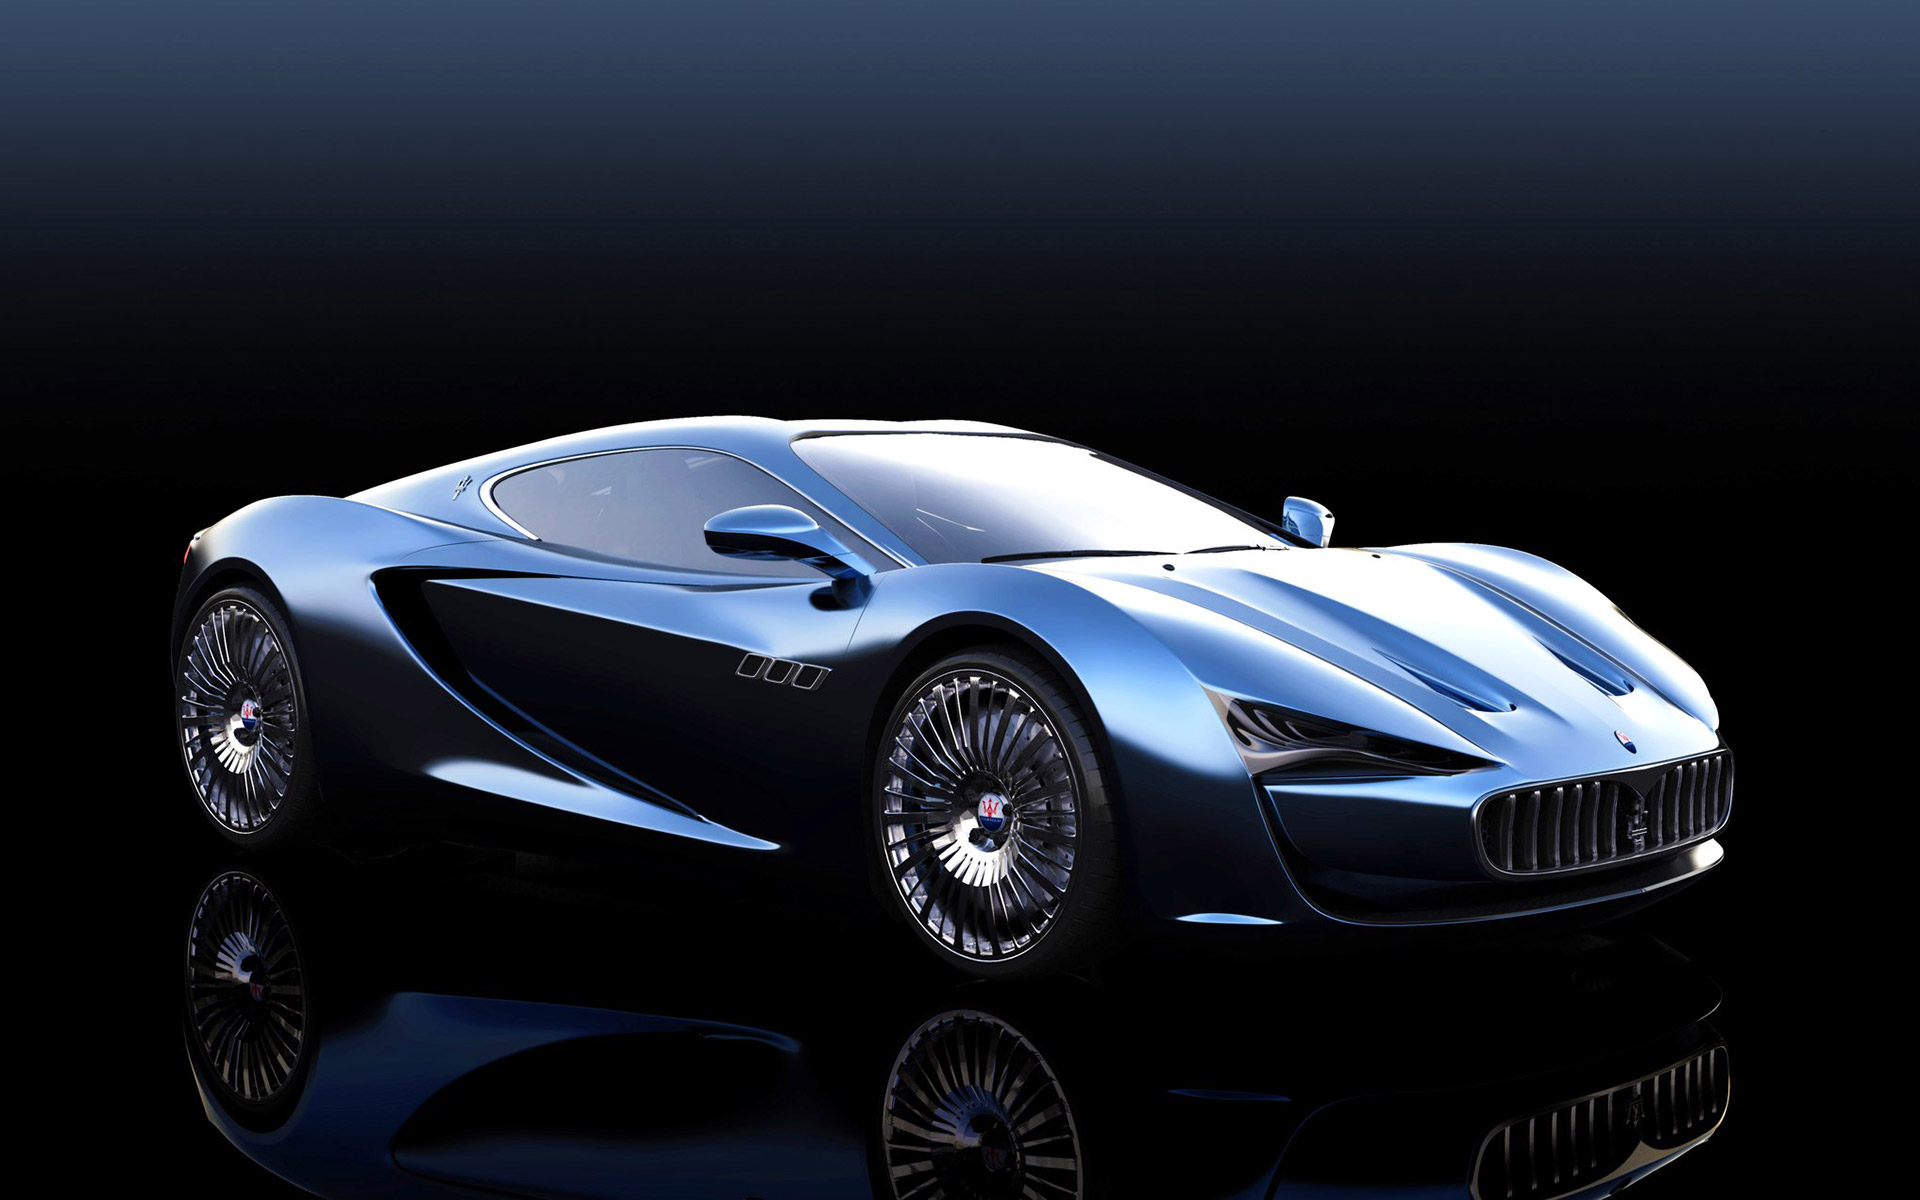 Maserati Bora Concept By Alexander Imnadze Car Body Design